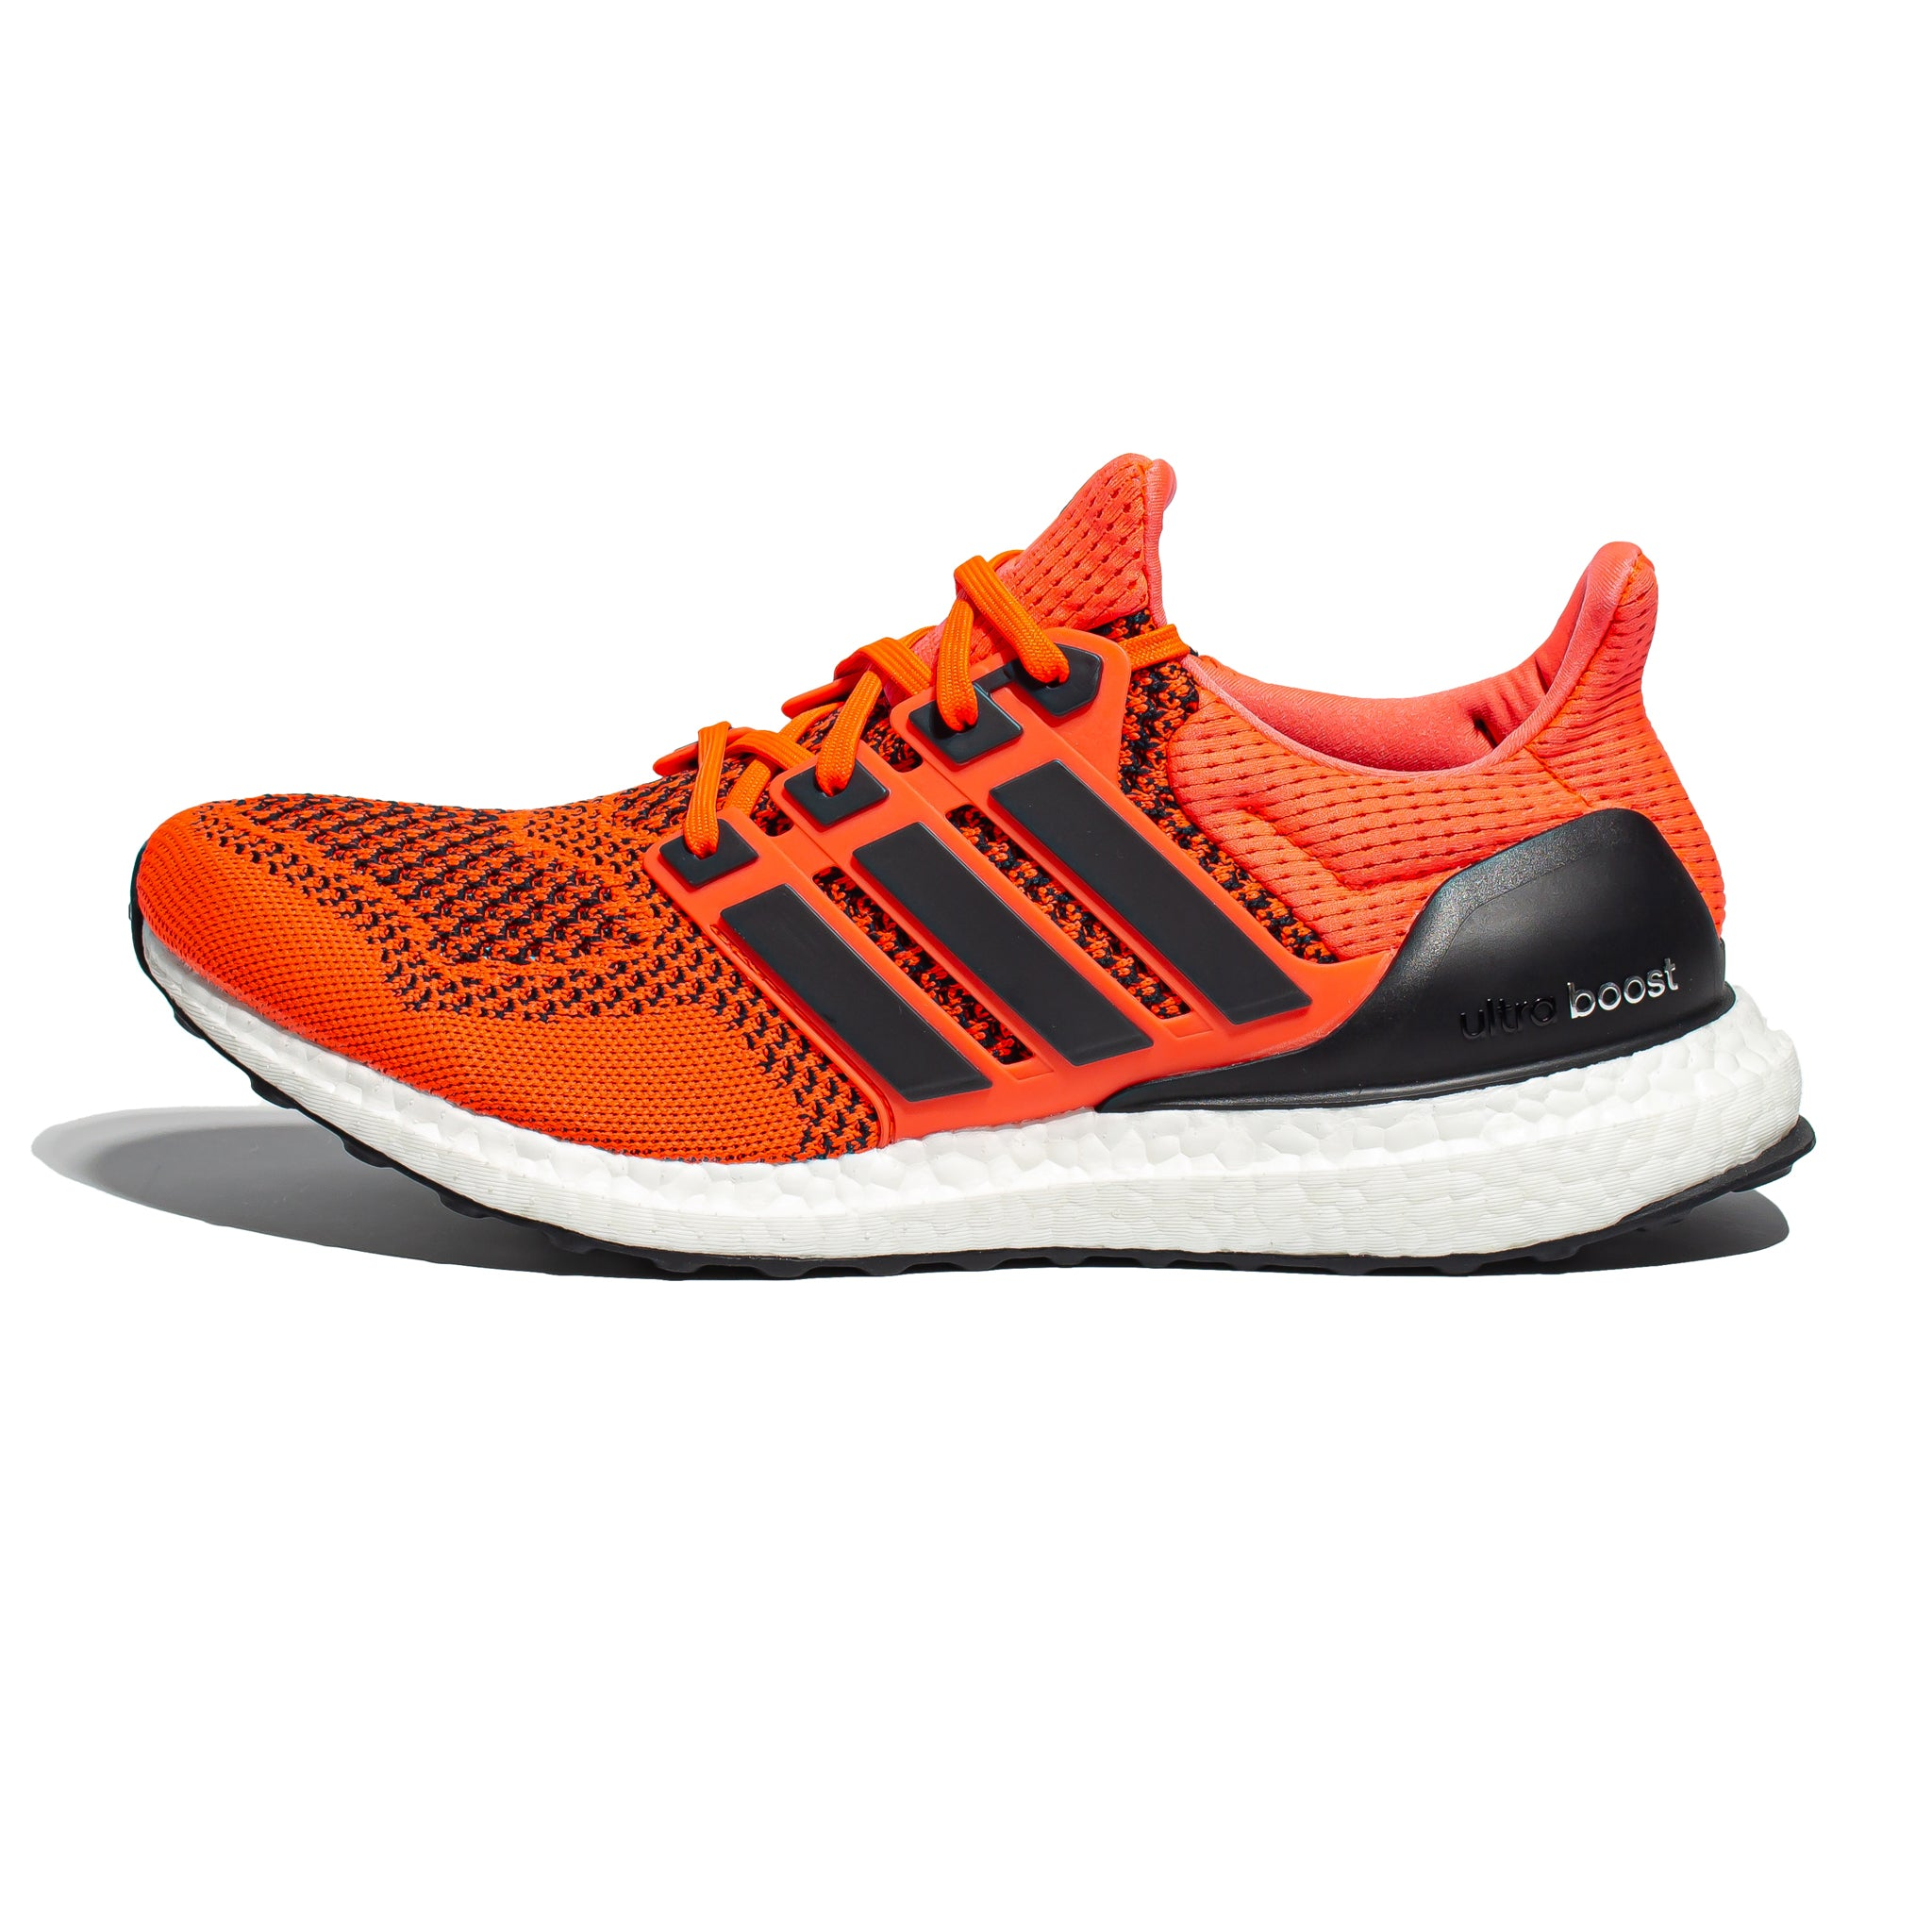 Adidas UltraBoost 1.0 Solar Red